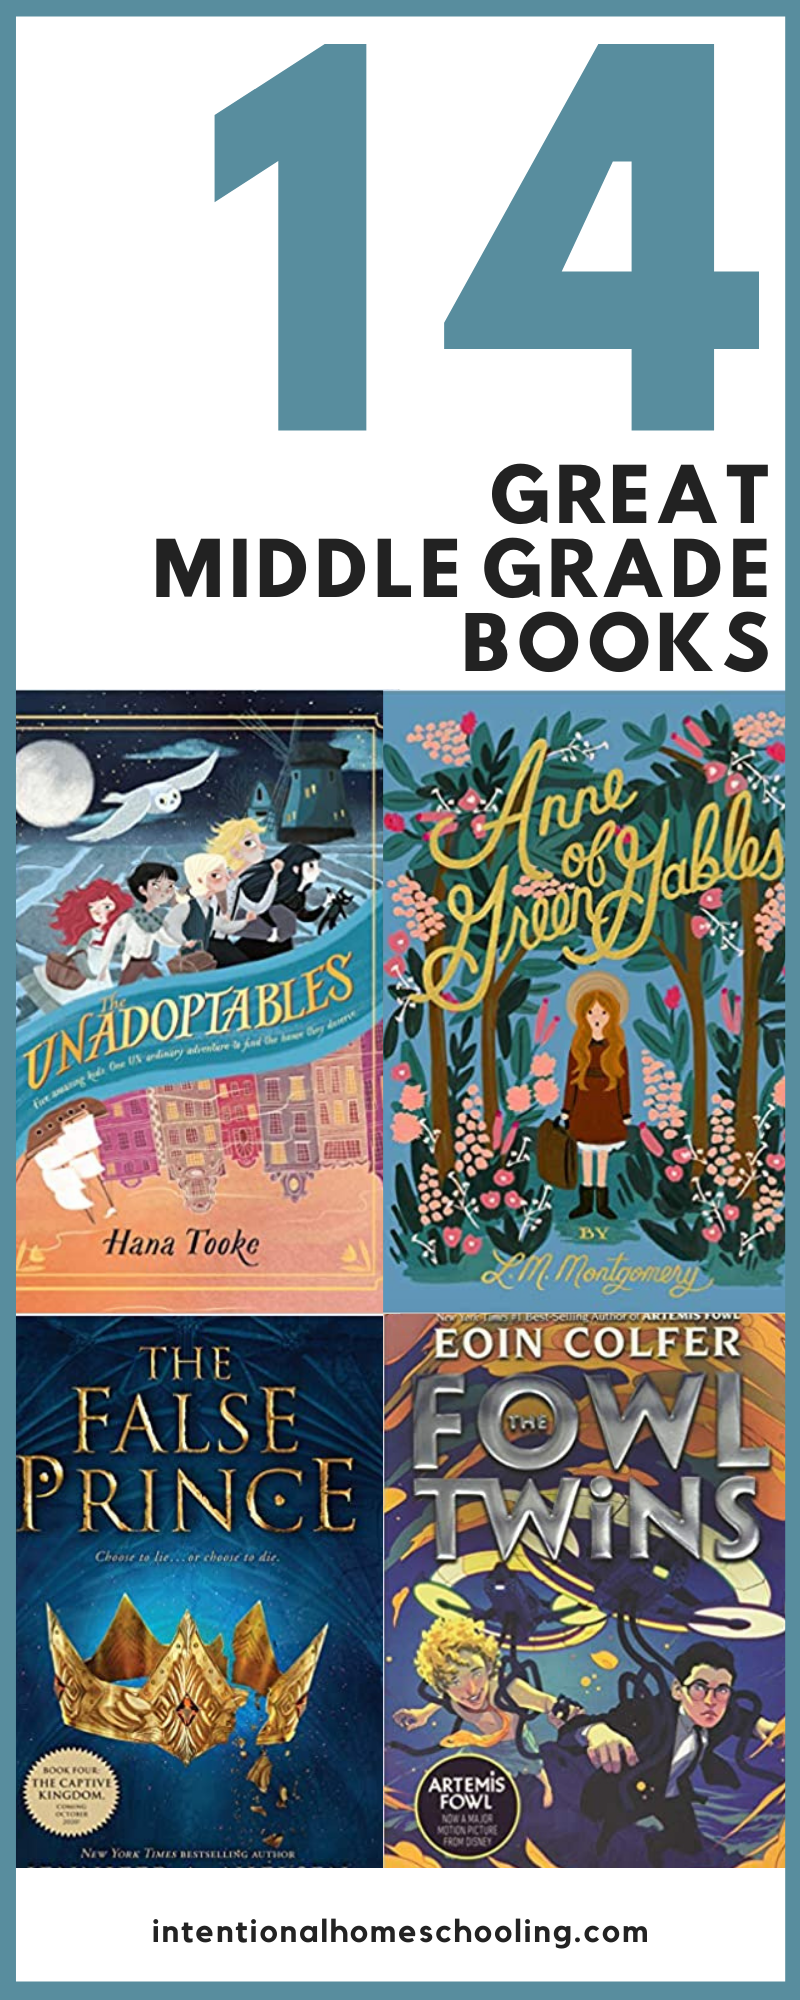 Great Middle Grade Books - books to read for grade 4, grade 5 and grade 6!